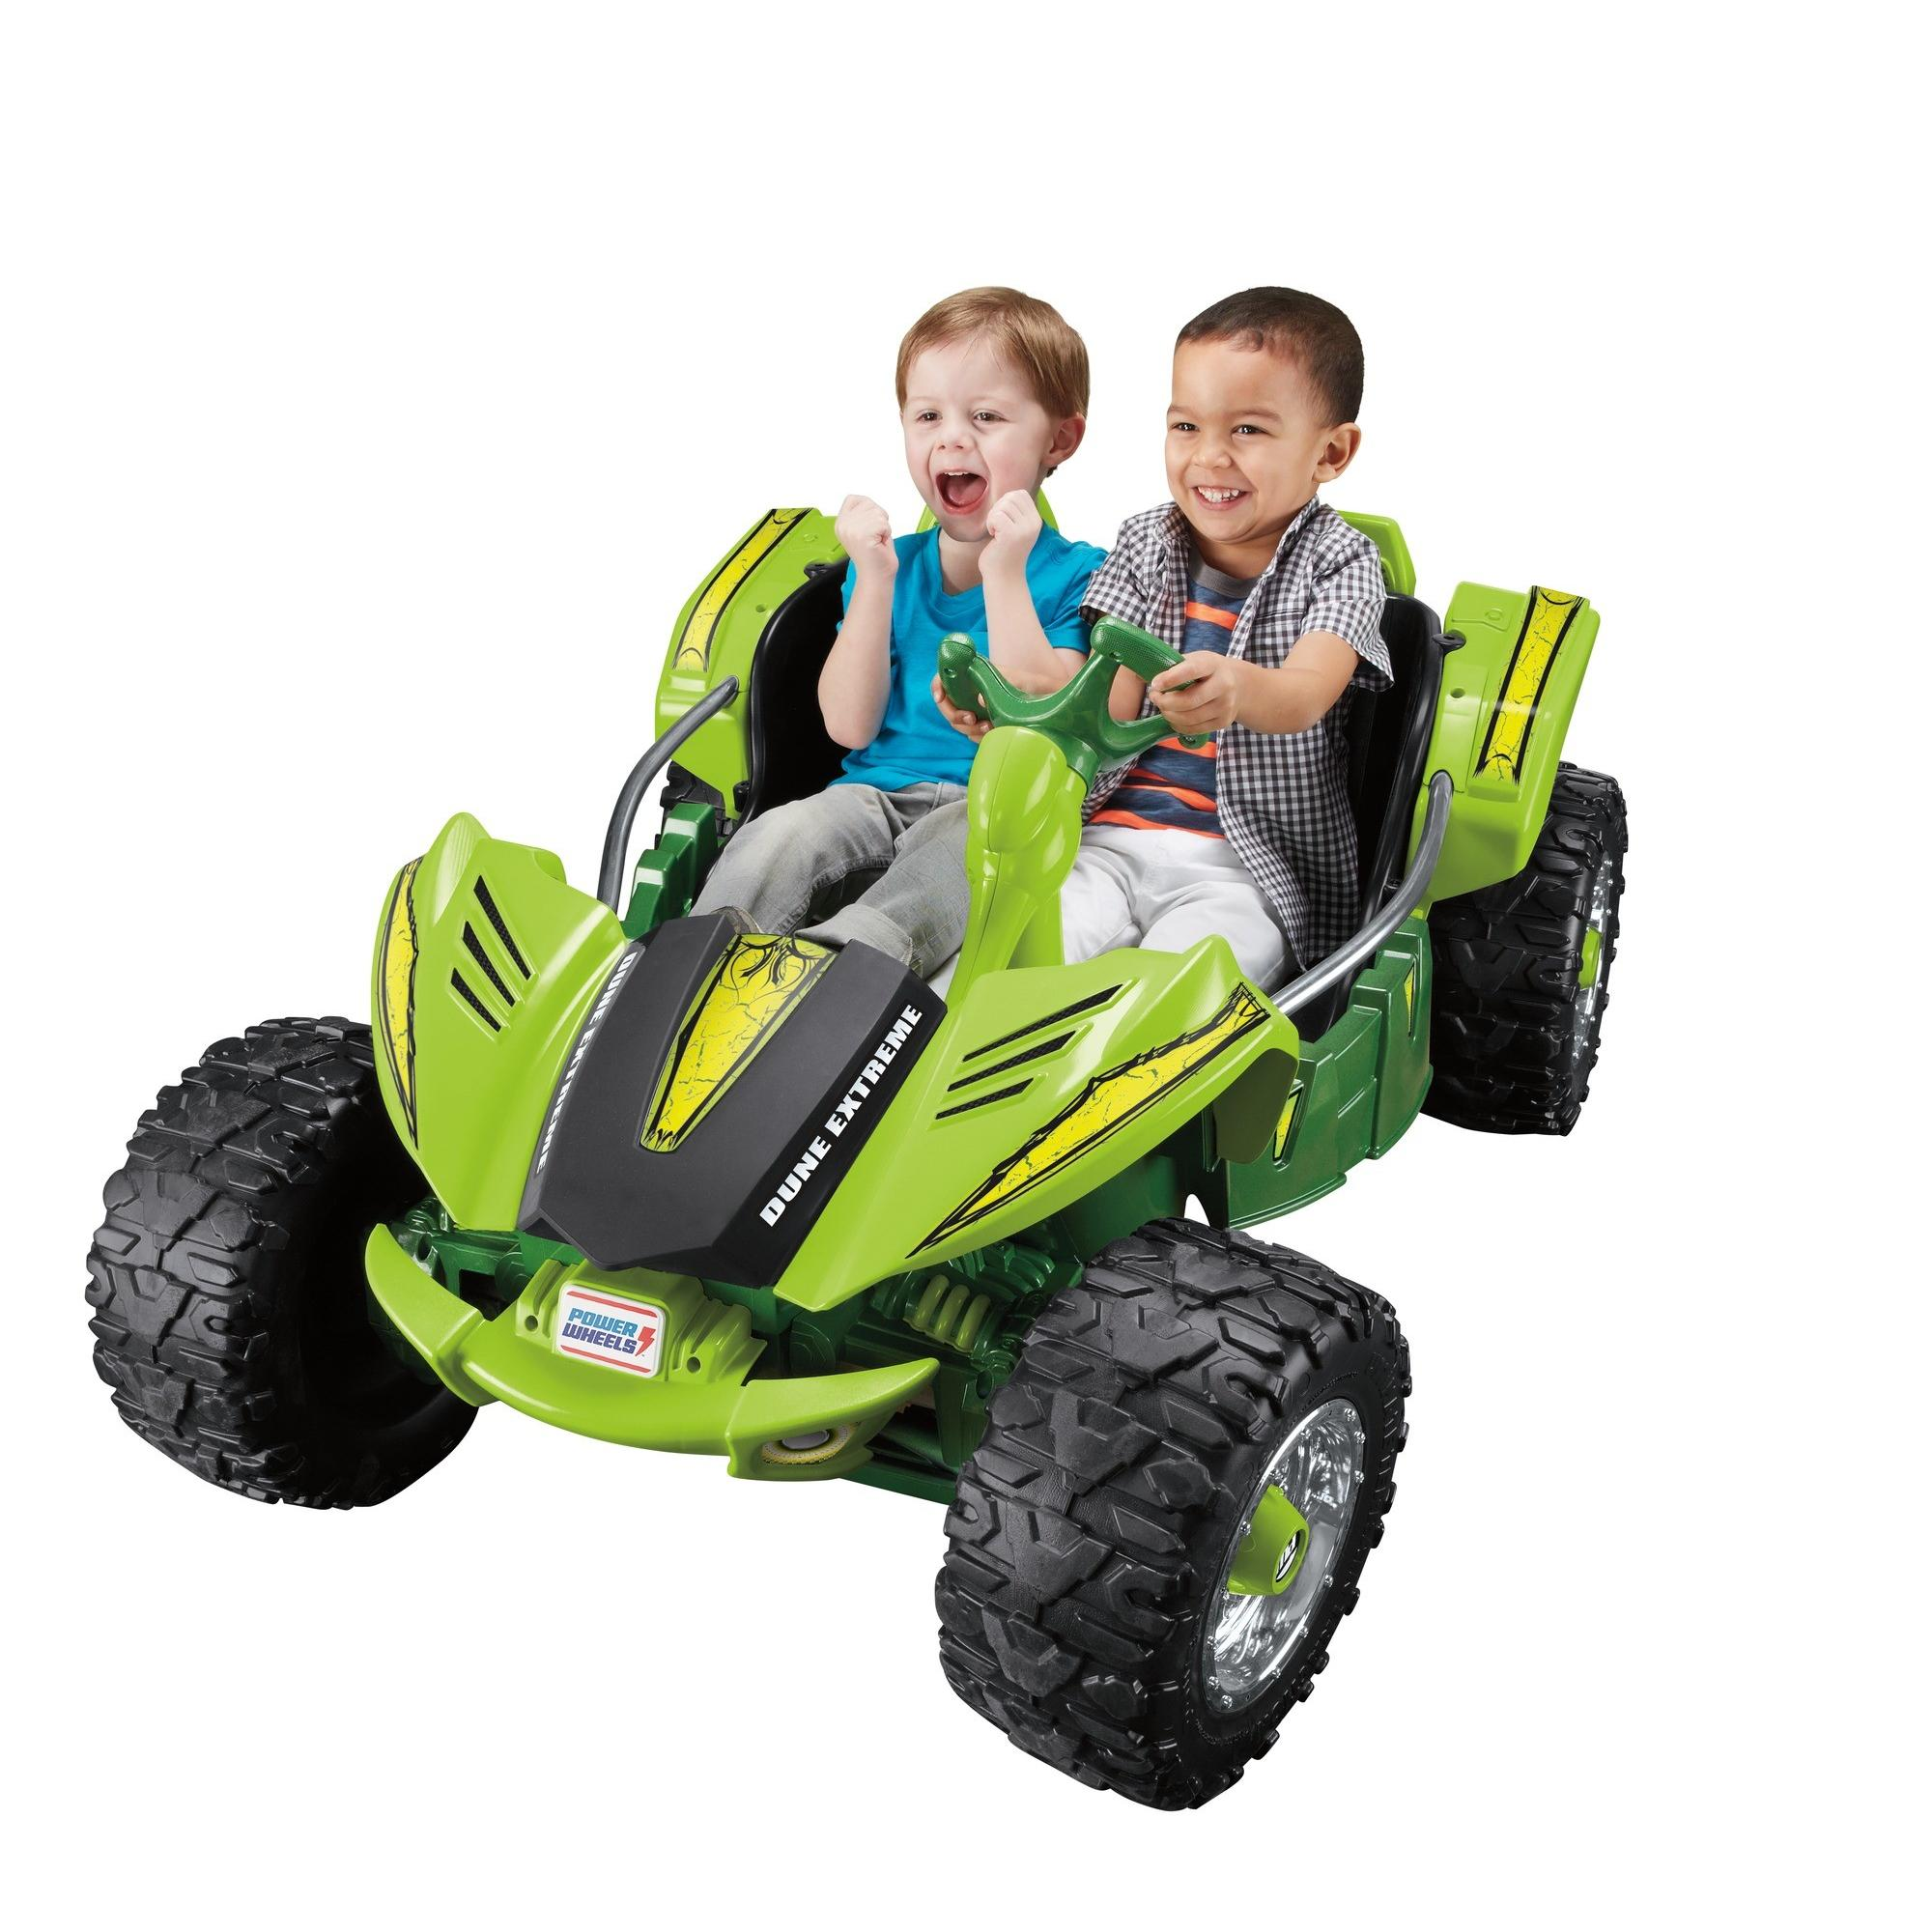 Power Wheels Dune Racer Extreme, Green Ride On Vehicle